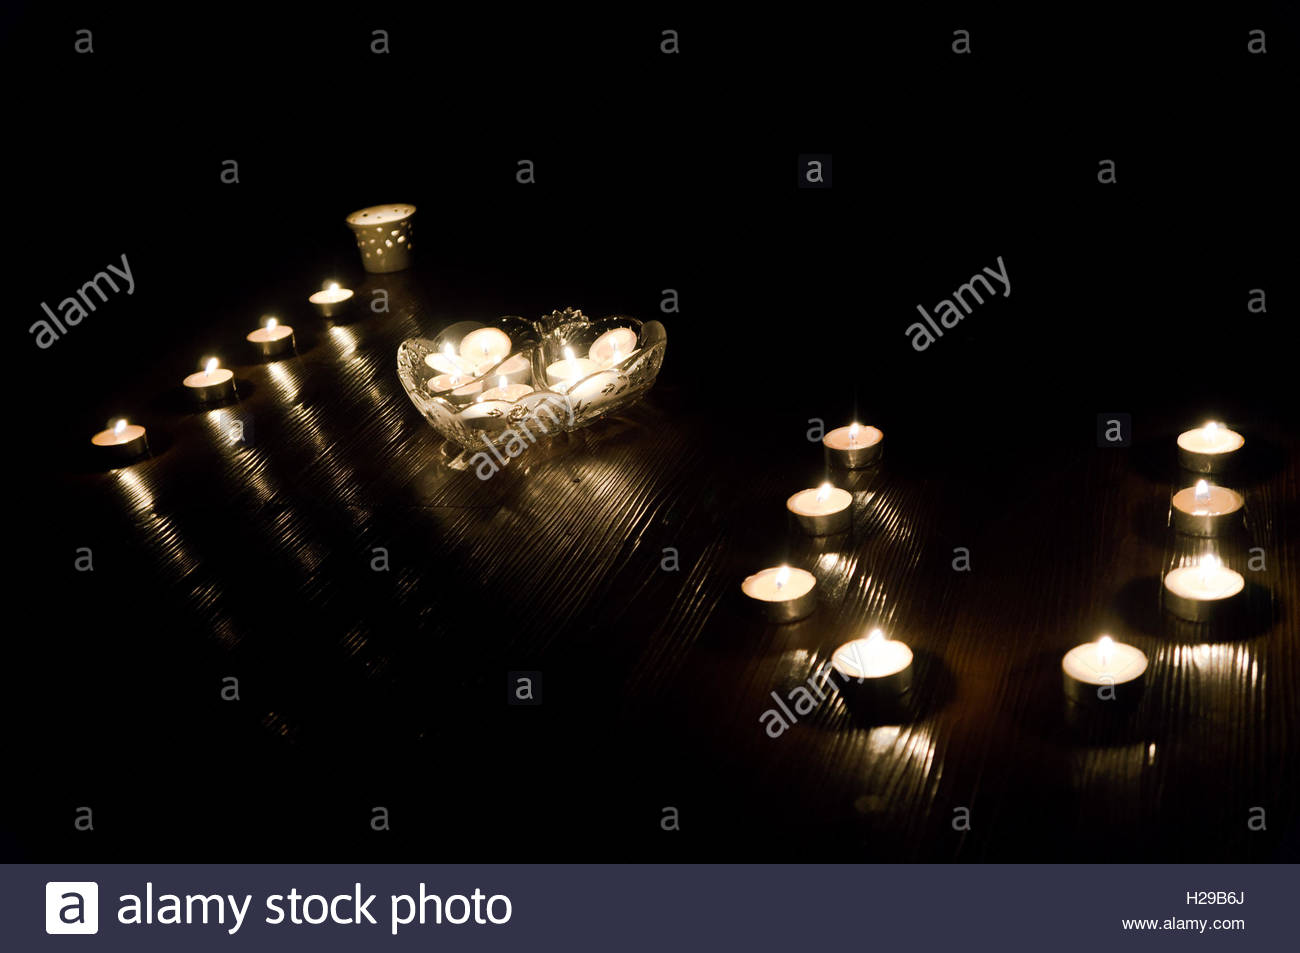 I love you in candlelight - Stock Image